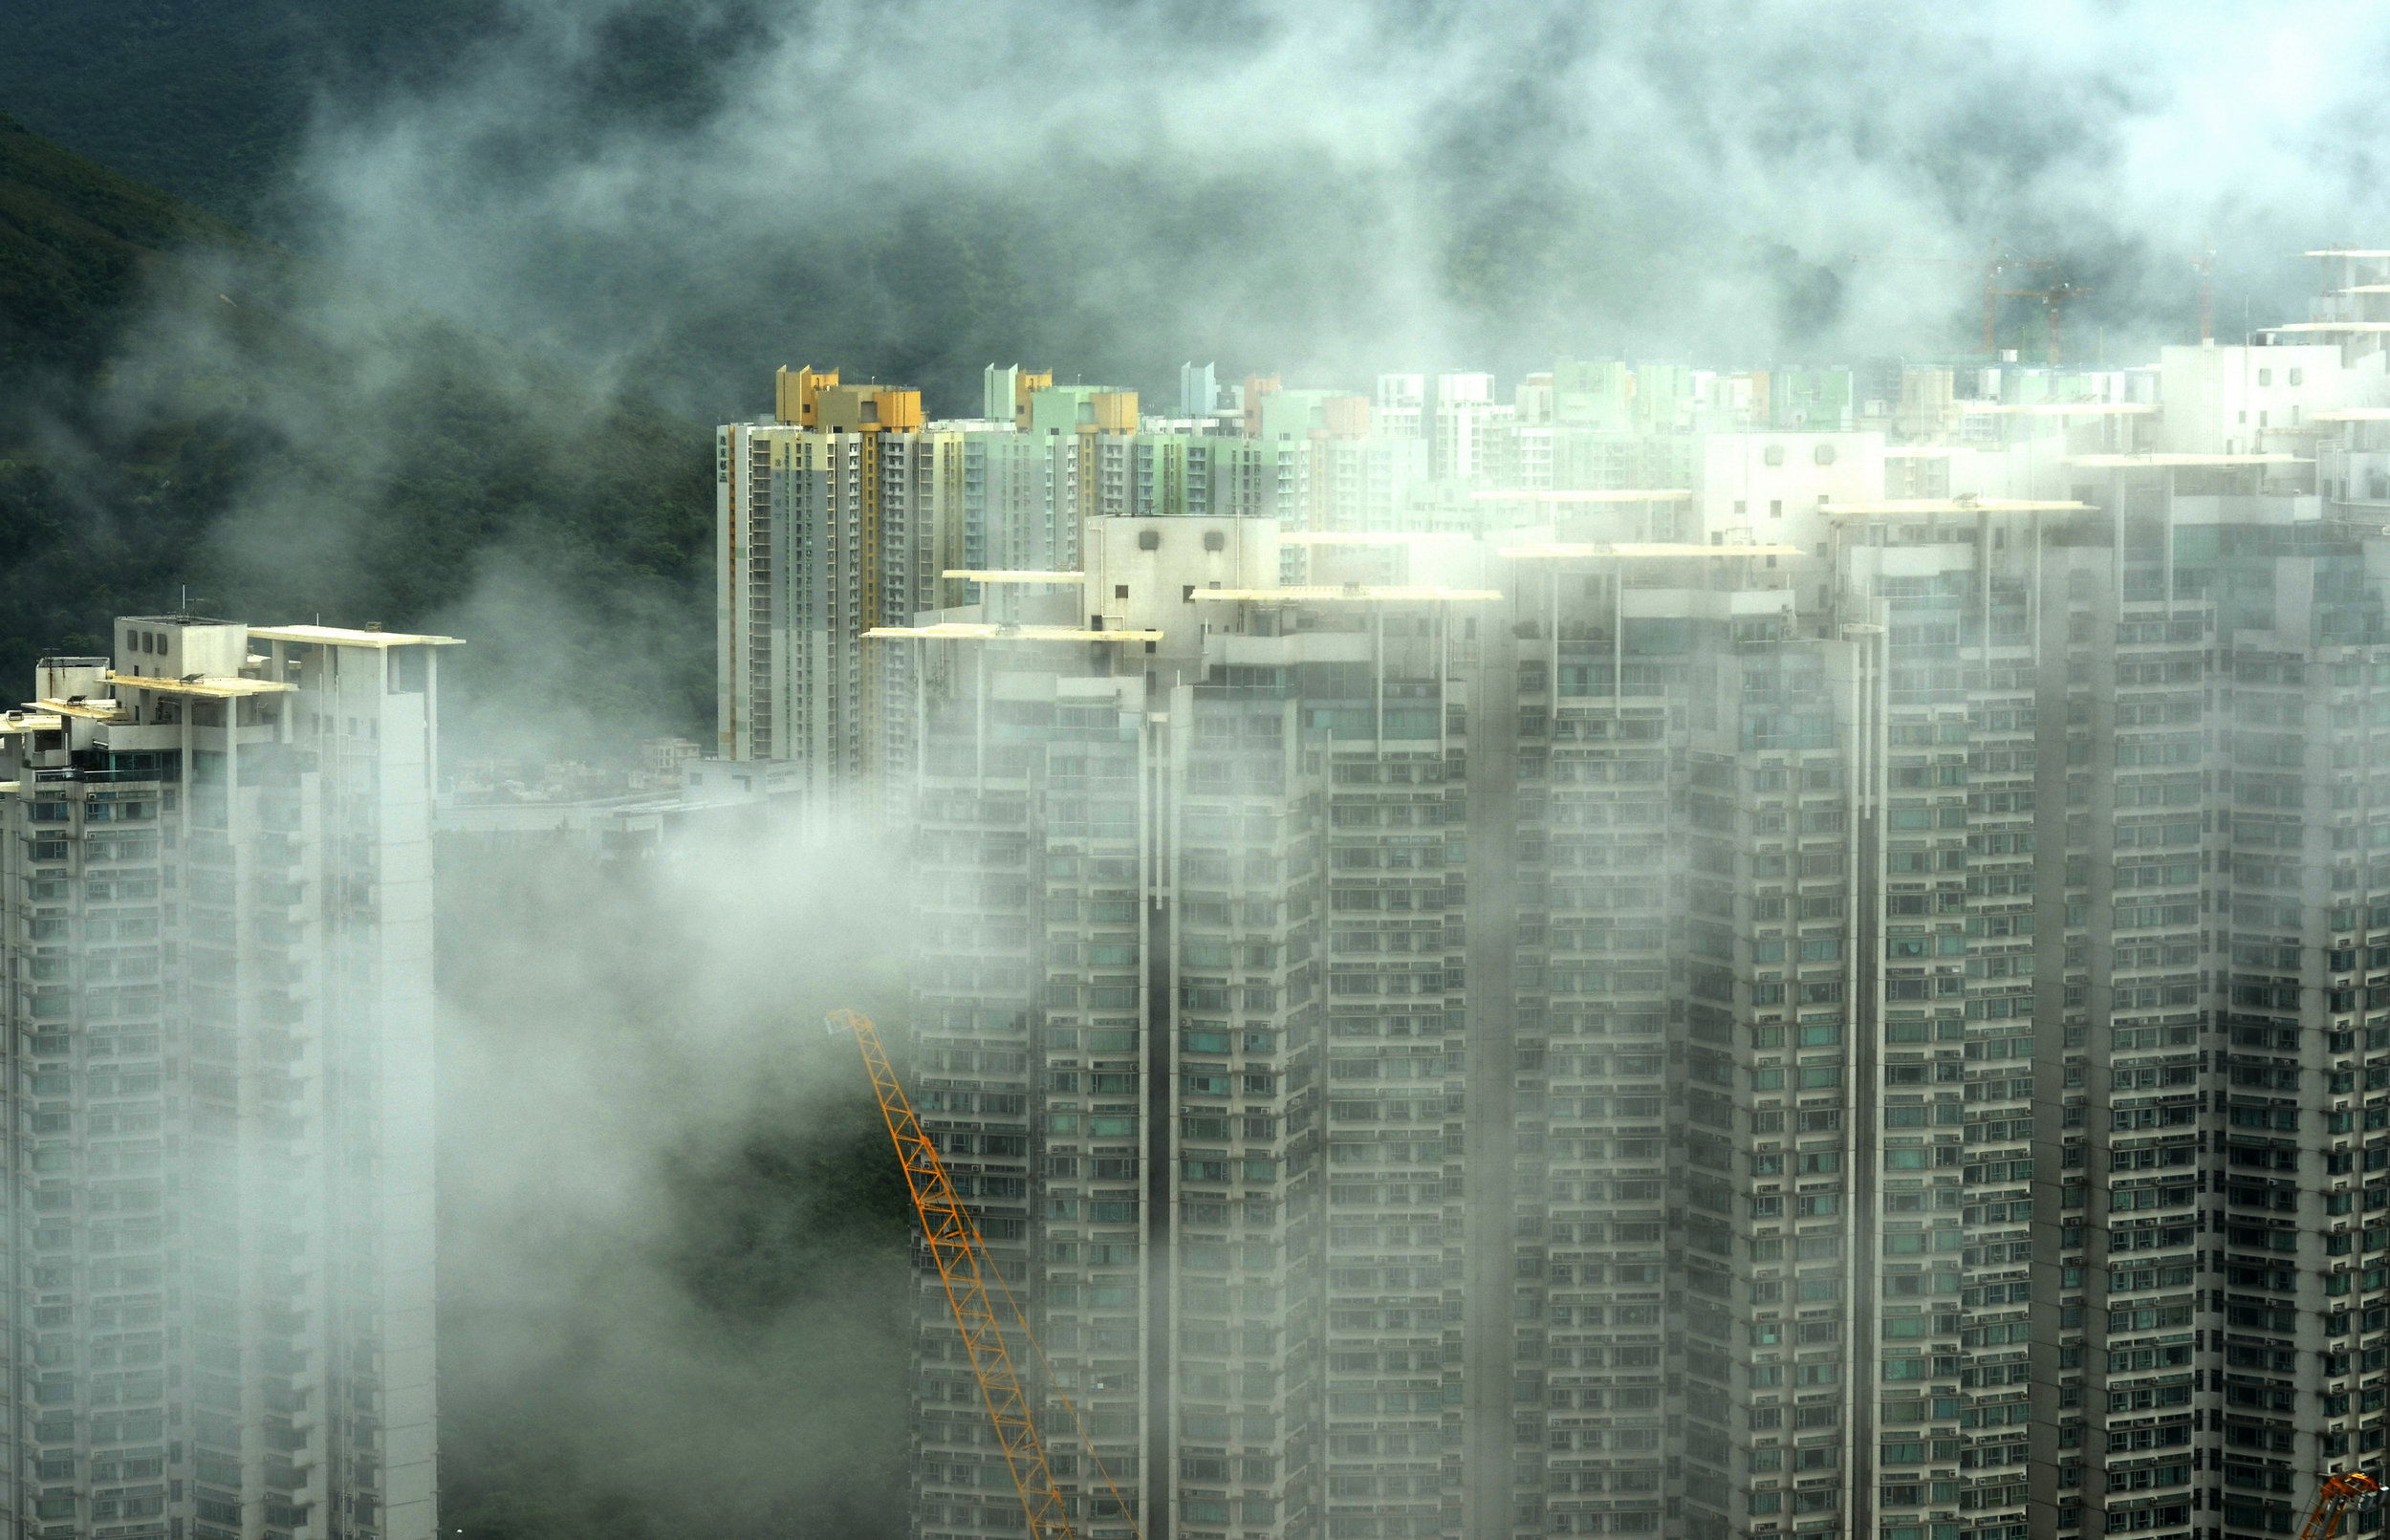 Poor air quality is common in many urban zones in China, which as a nation accounts for a third of all greenhouse gas emissions on Earth, posing a threat to human health. Photo credit: Pop and Zebra